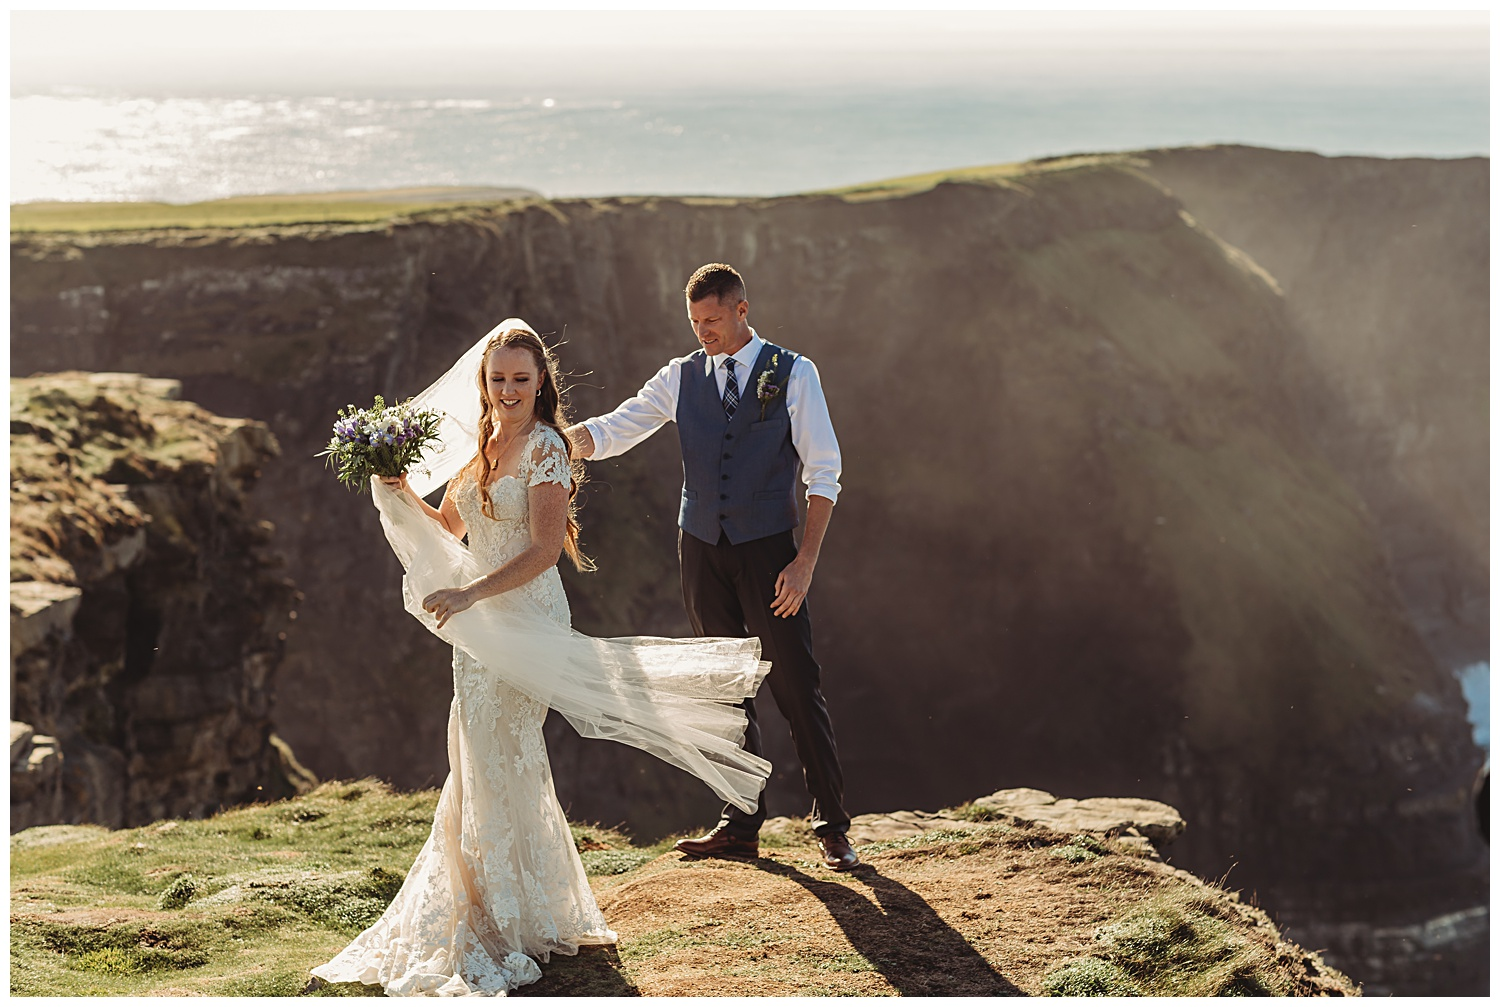 The Cliffs of Moher Destination Wedding Liscannor, County Clare, Ireland_1224.jpg